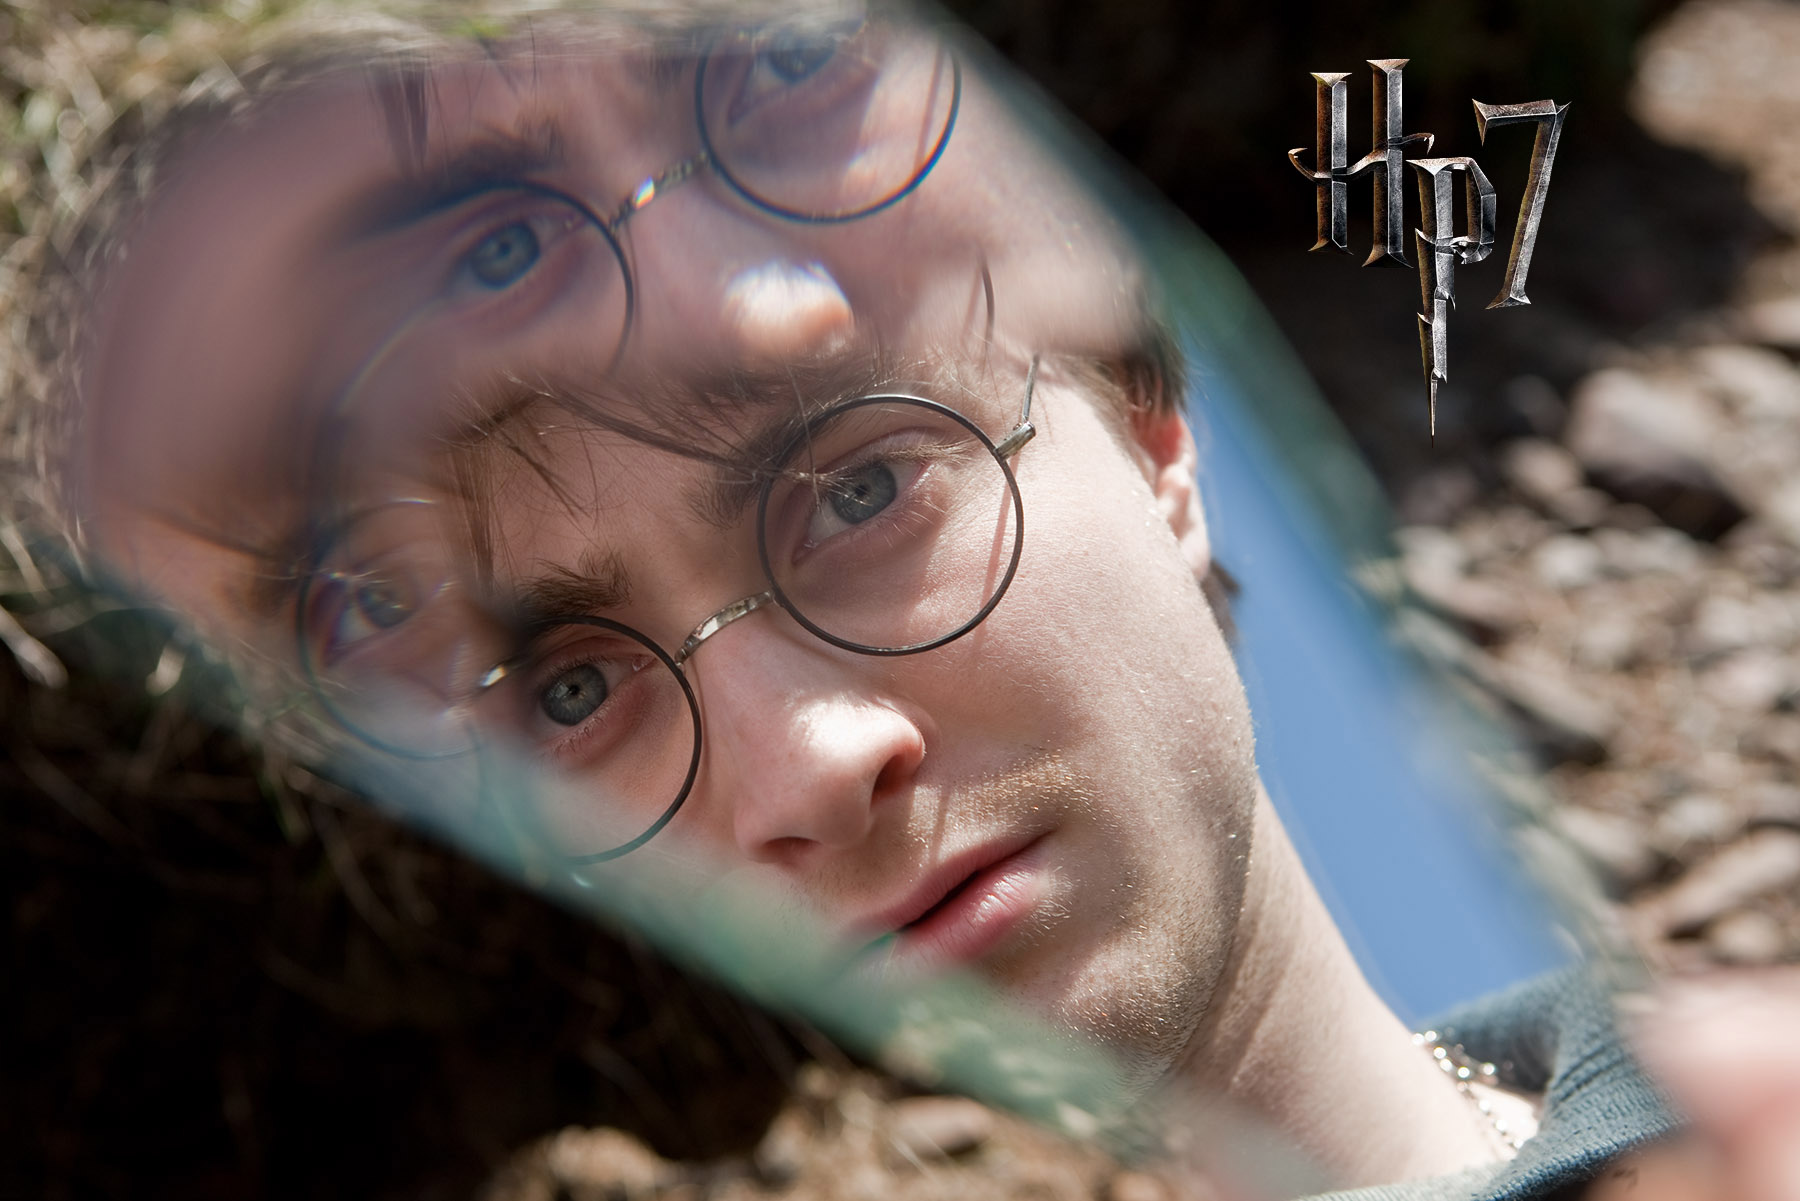 Harry Potter and the Deathly Hallows (film) - Wallpaper